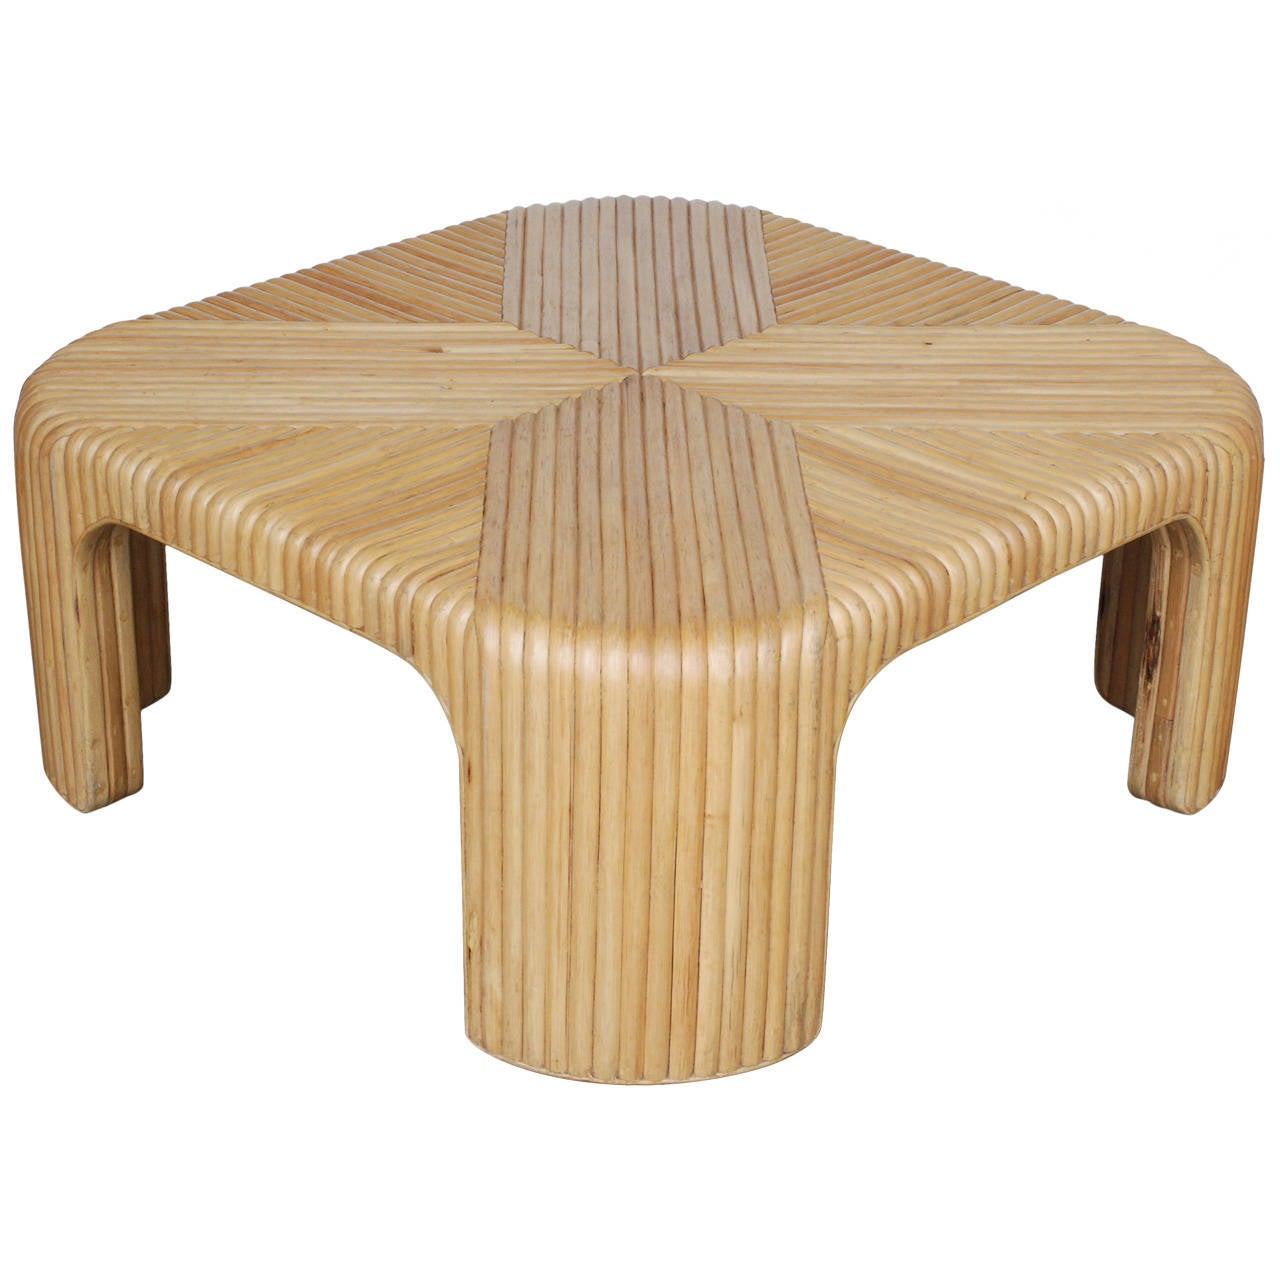 Graphic Rattan Coffee Table For Sale At 1stdibs